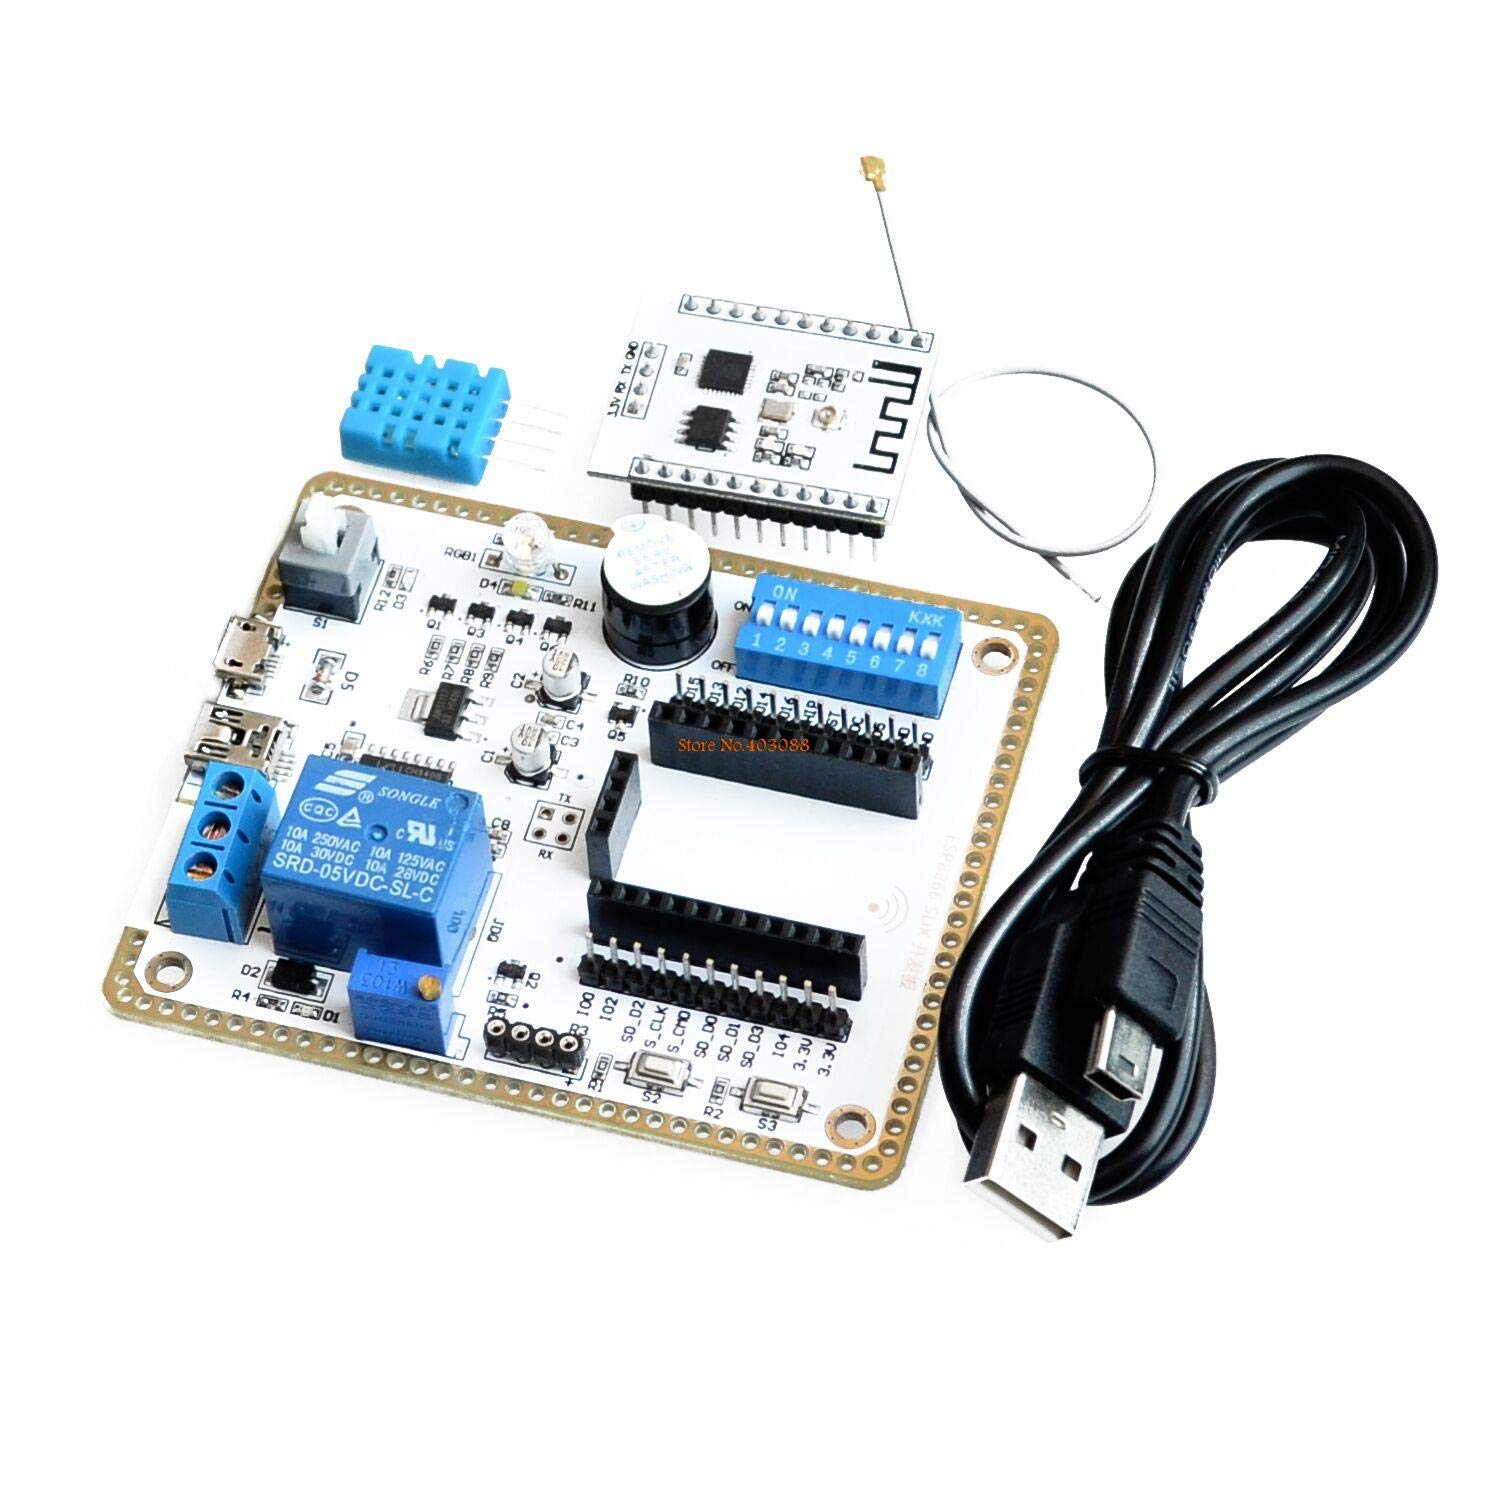 1sets ESP8266 Wireless WiFi Module Develop Board 8266 SDK Development Chip with The Cable